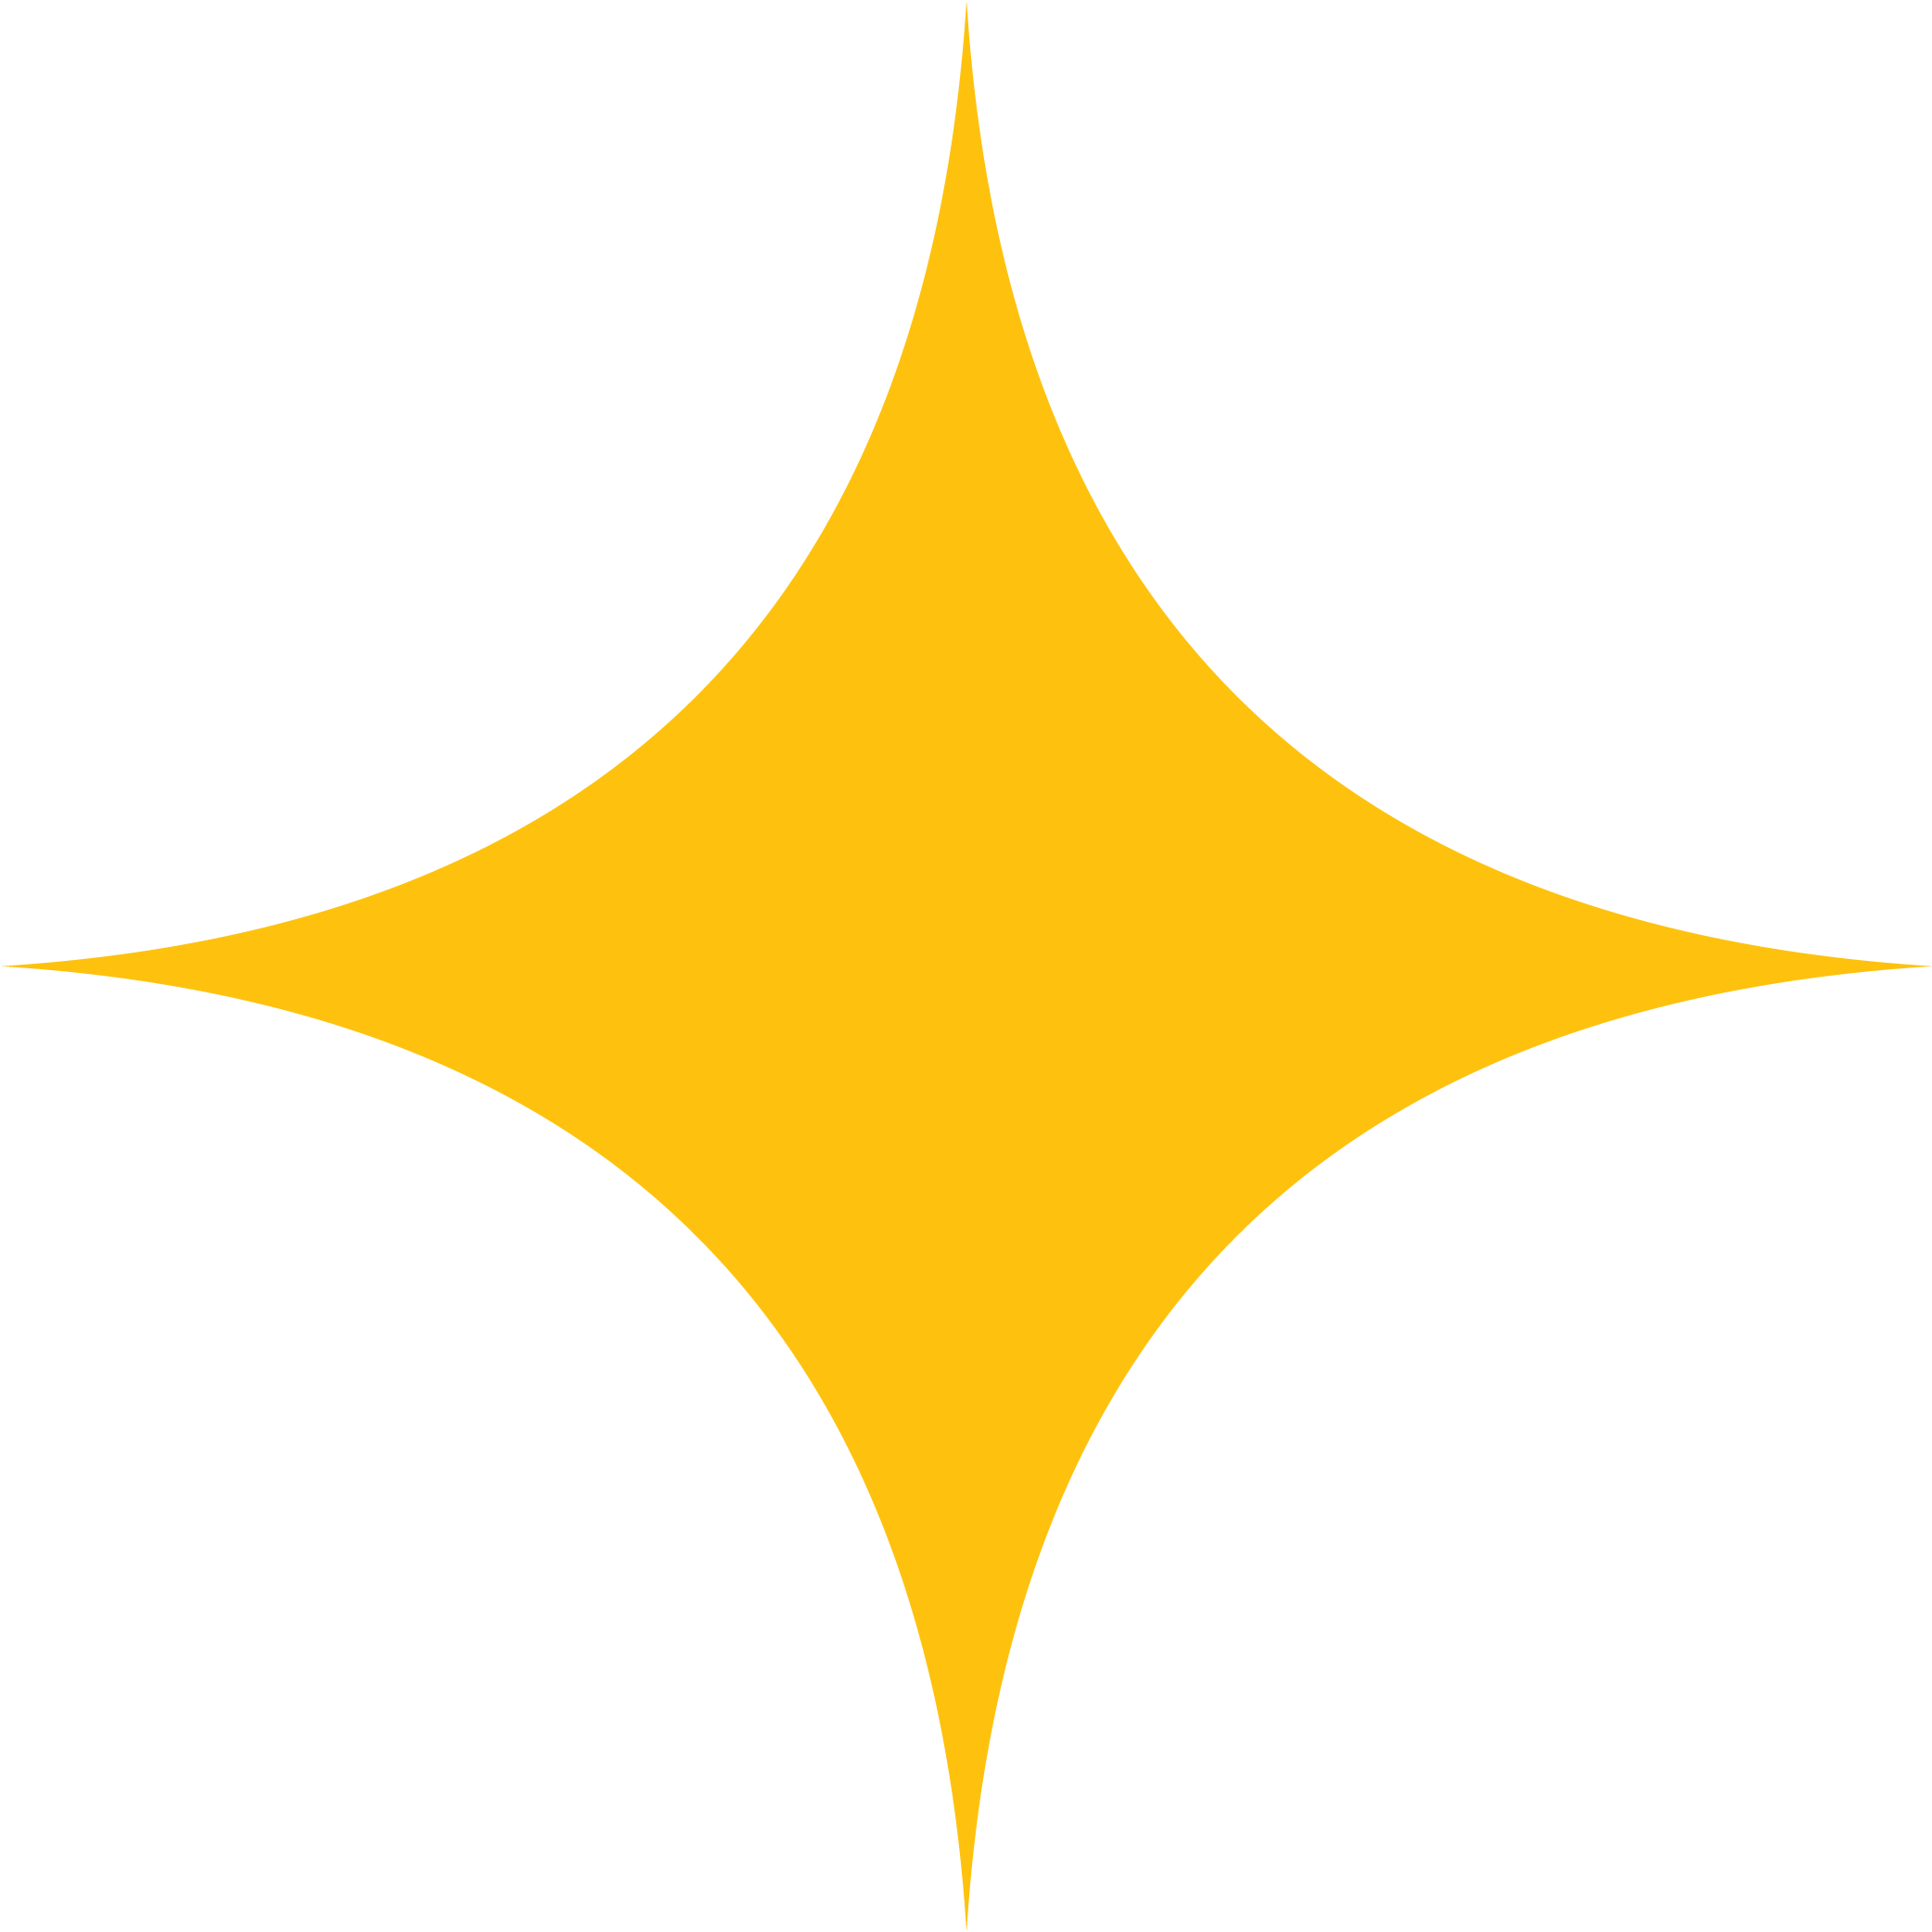 SFU003_SparkElement_Yellow_CMYK.png